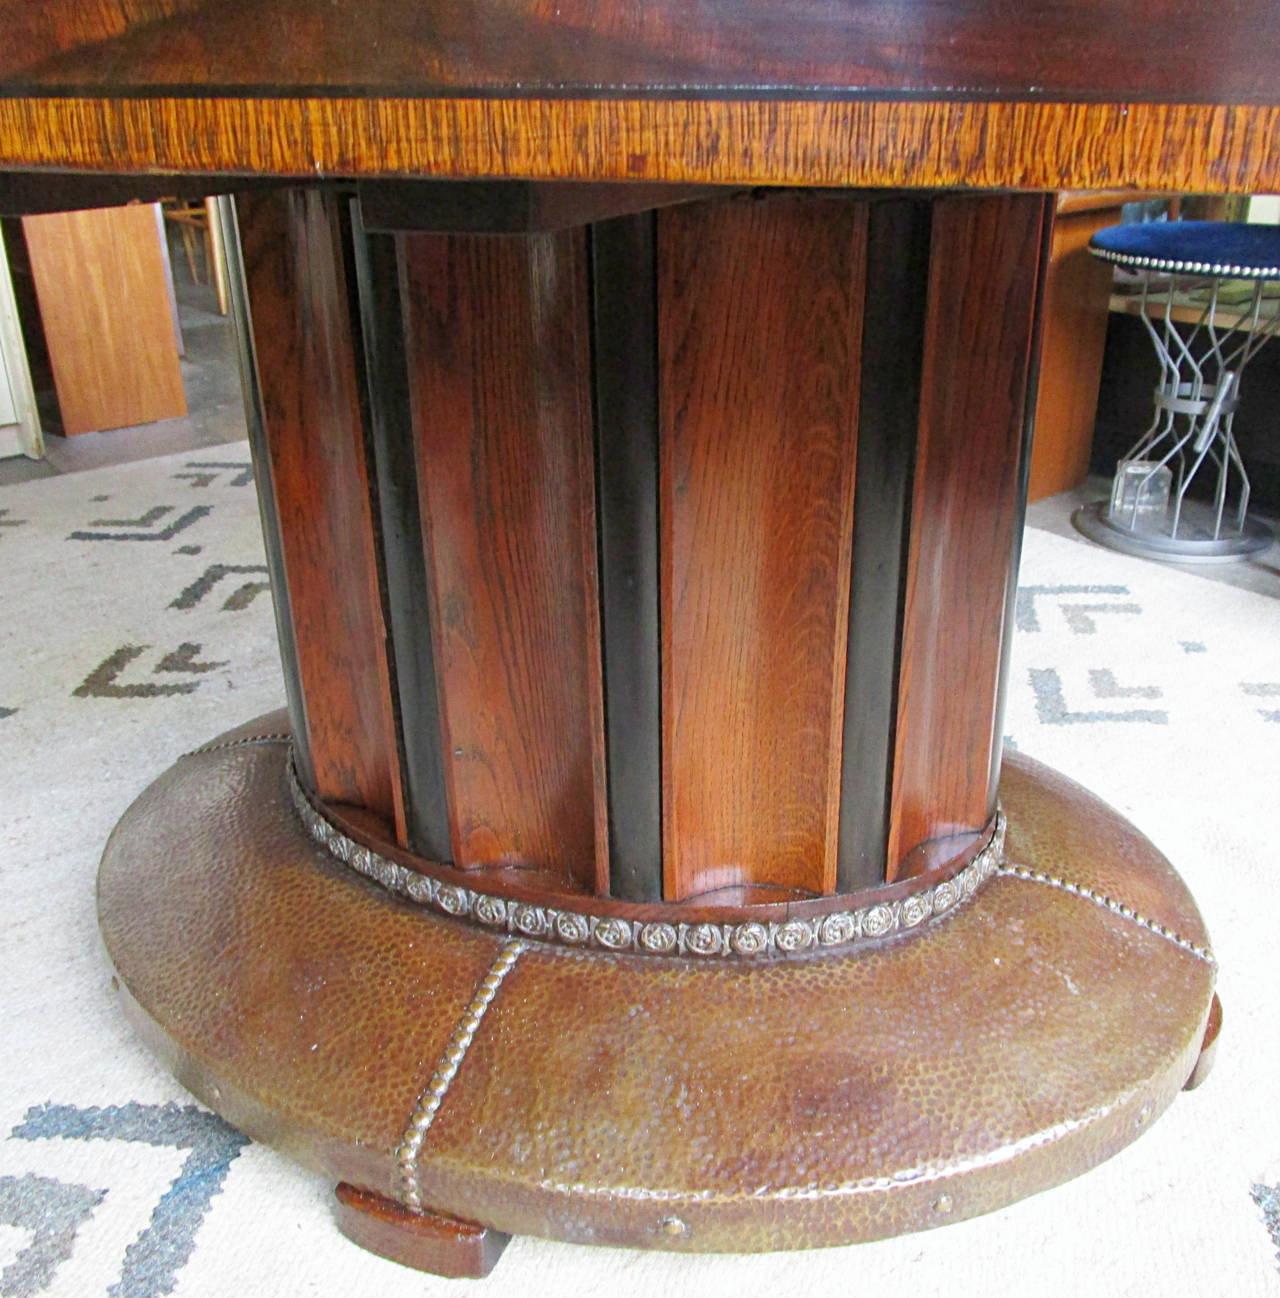 Oval Parquetry Dining Table with Hammered Copper Base by De Coene Freres In Excellent Condition For Sale In Hudson, NY